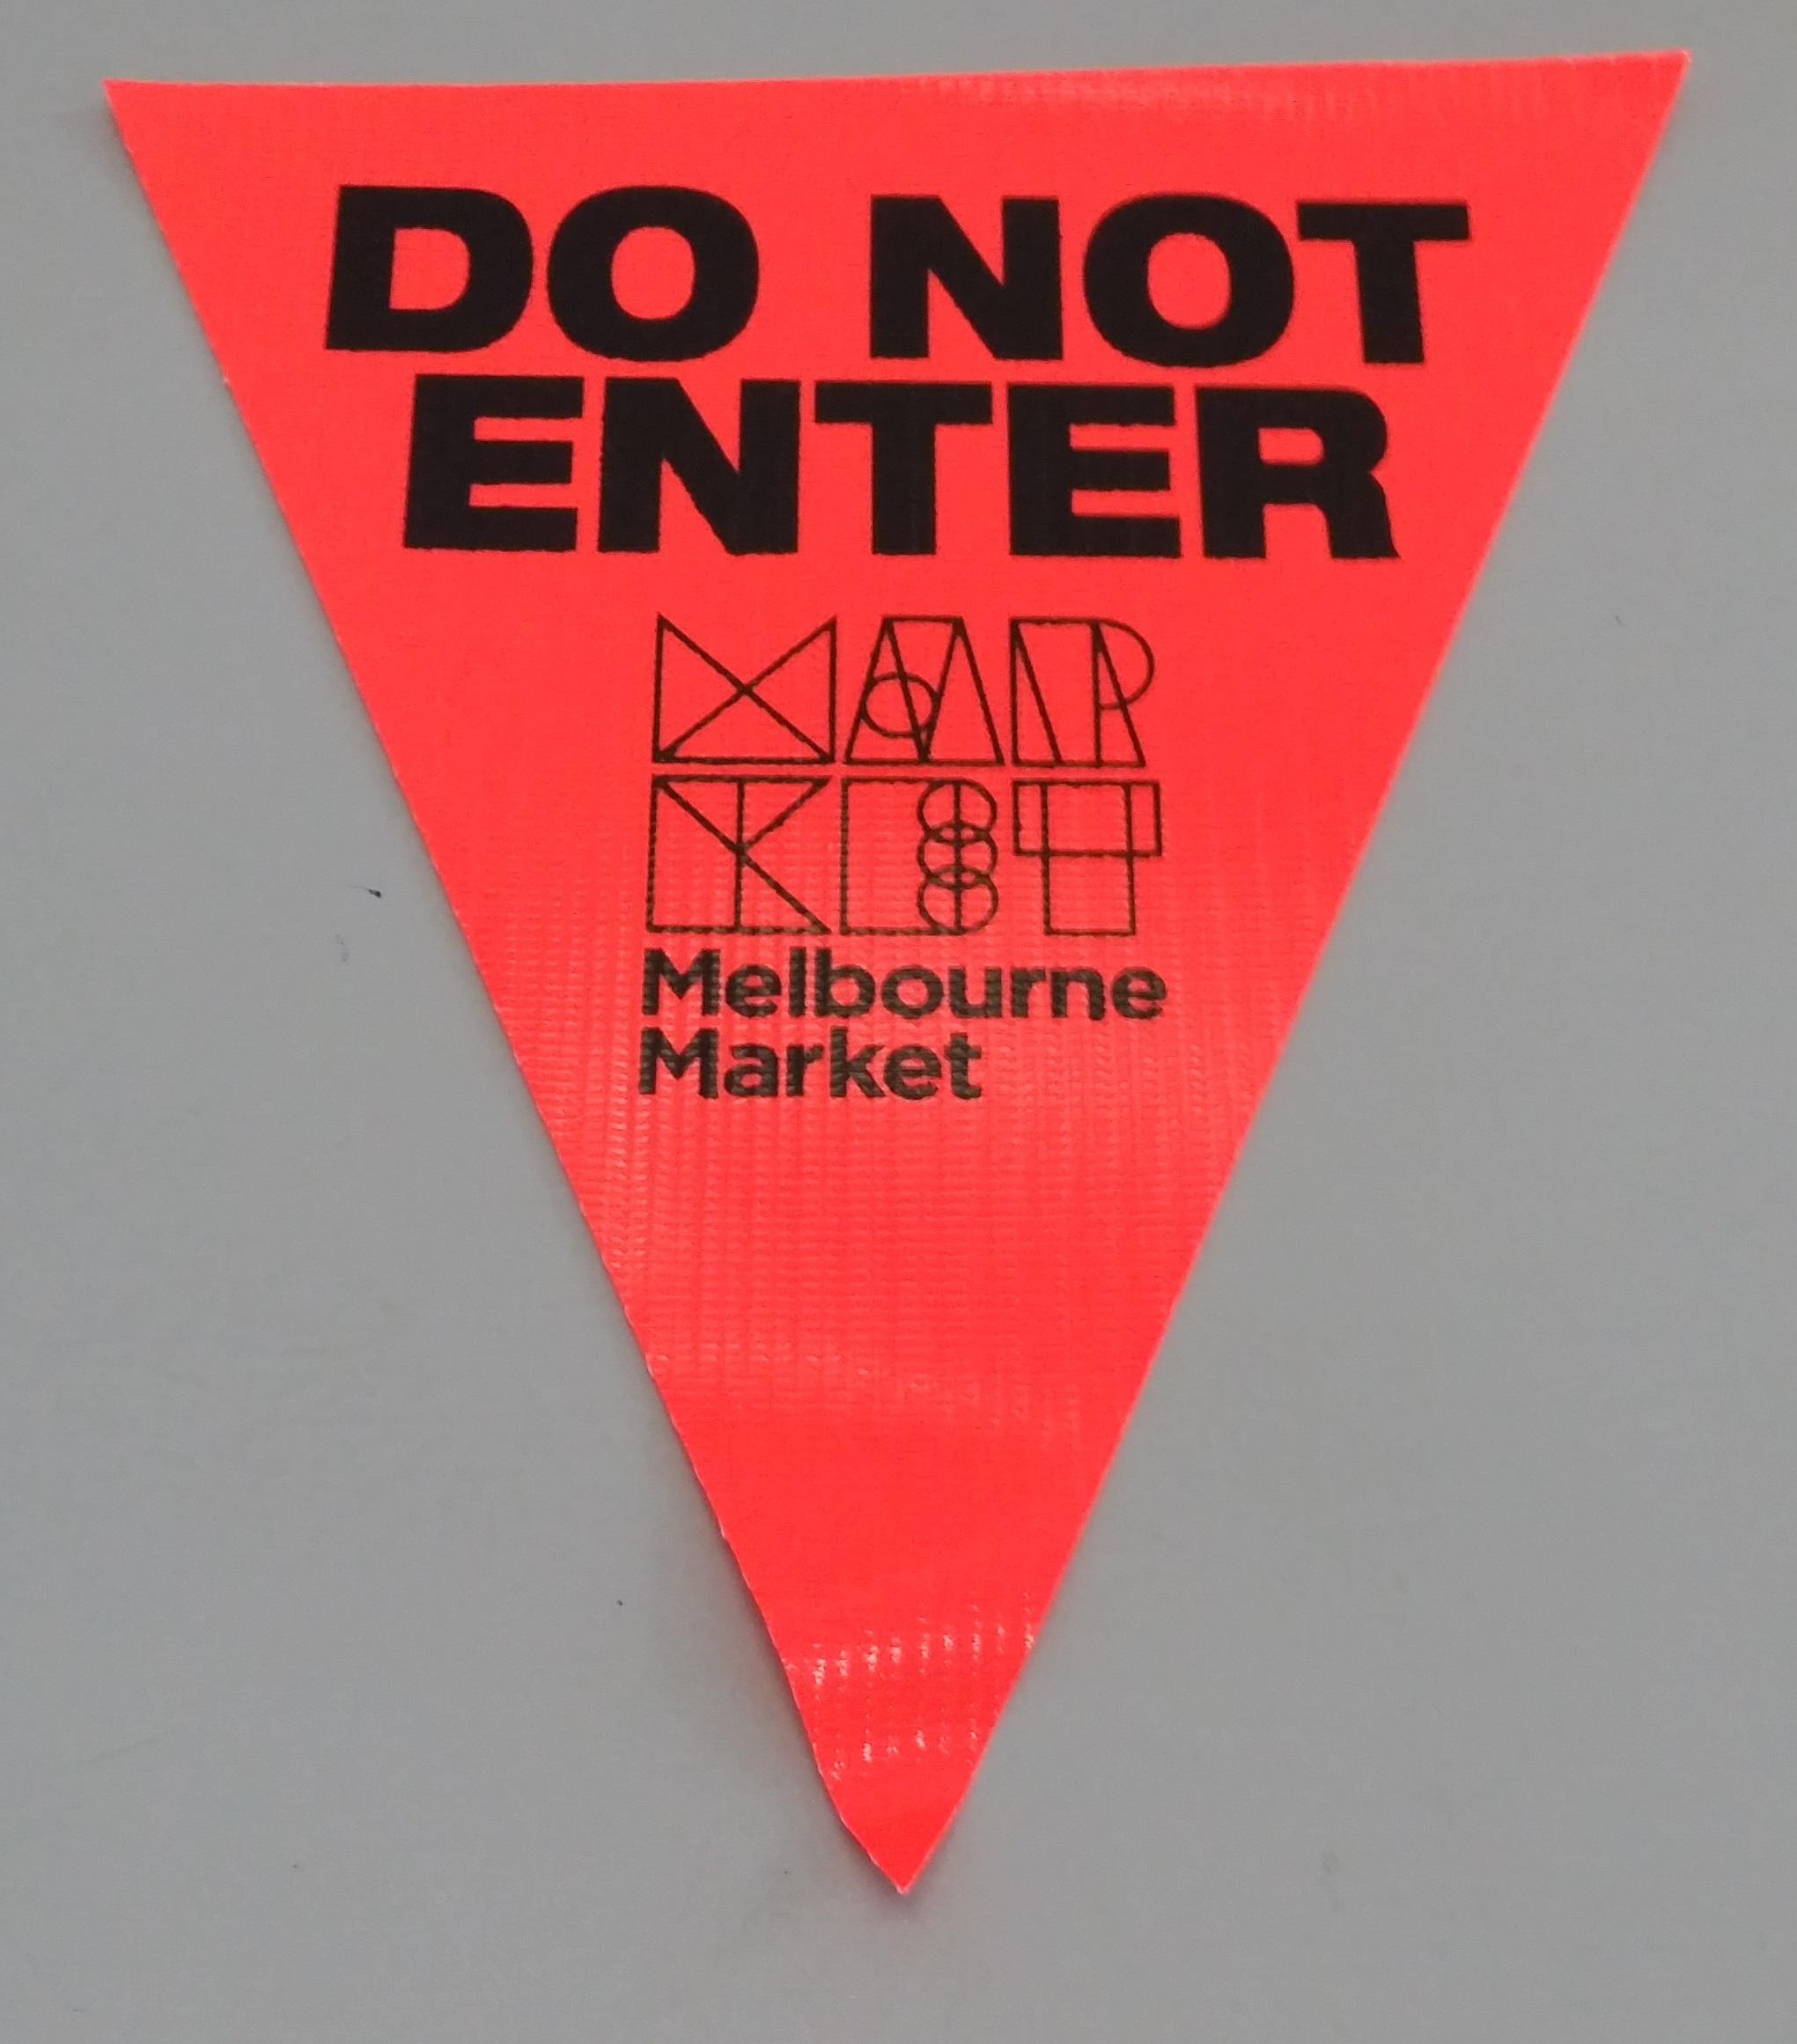 Do Not Enter Melbourne Markets (orange)